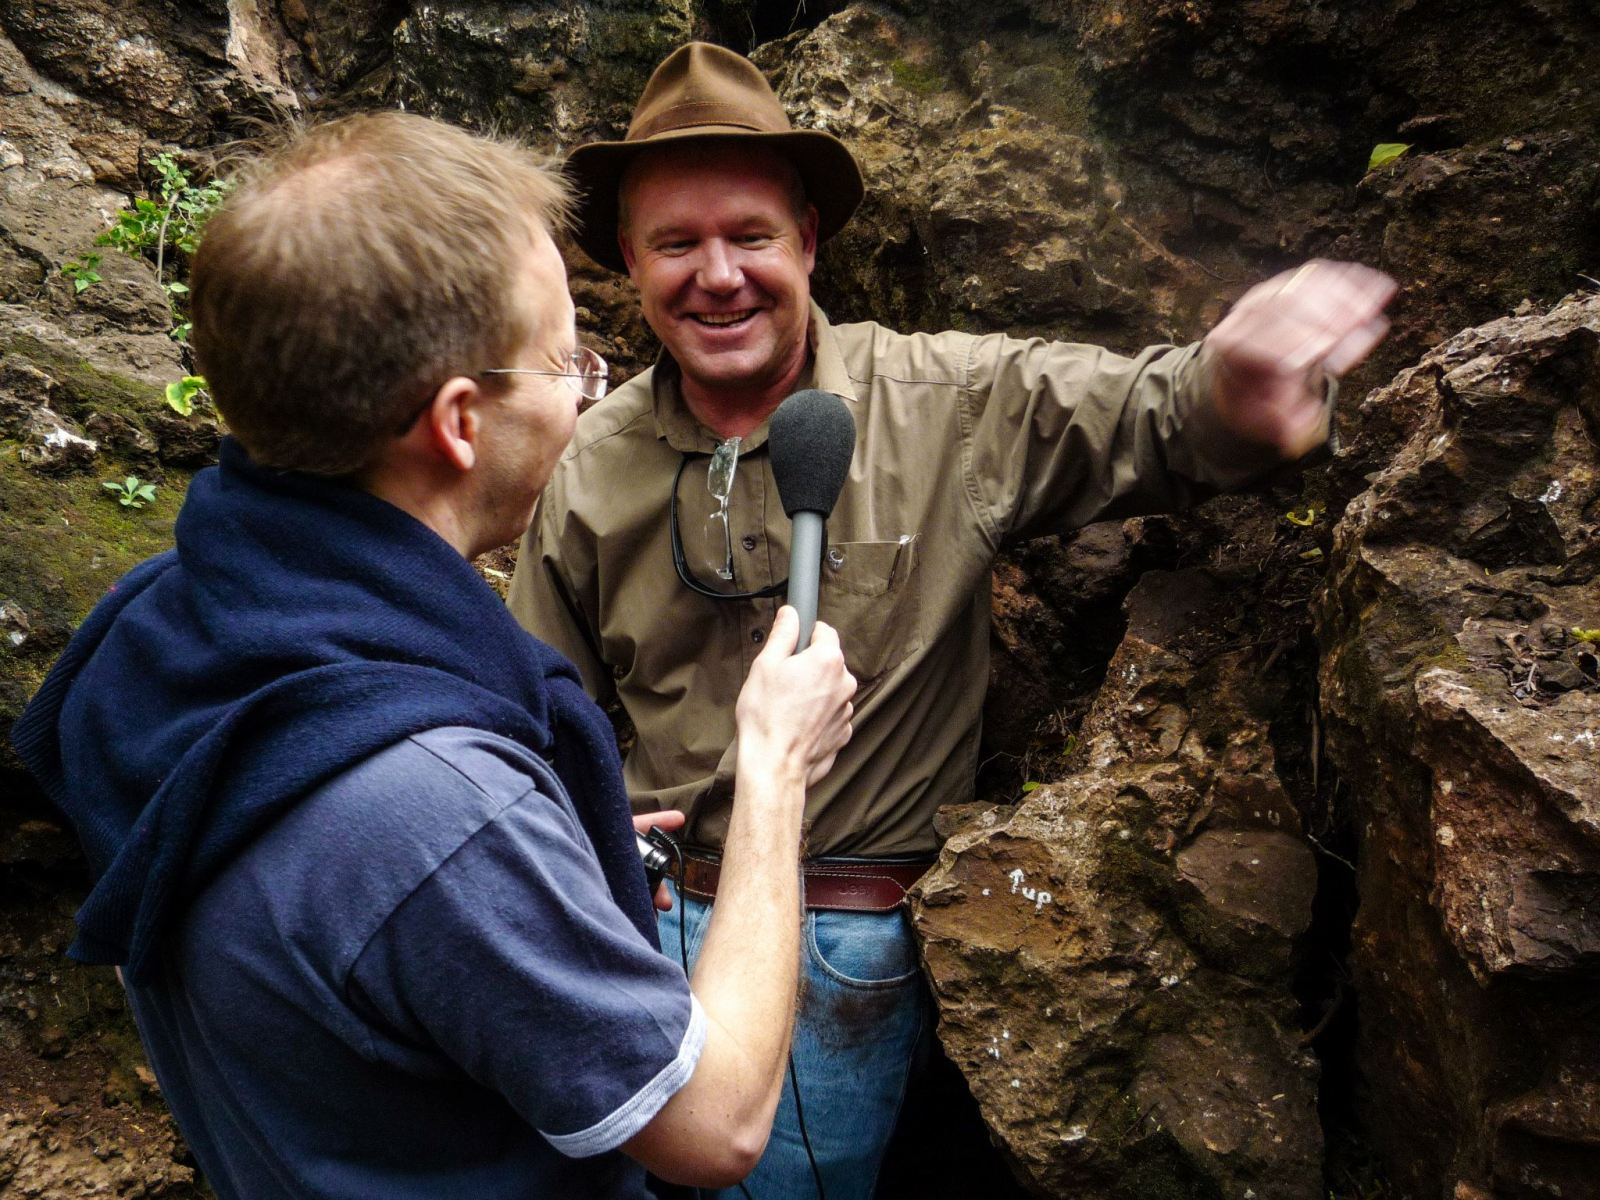 Chris Smith interviews Professor Lee Berger in the Malapa cave